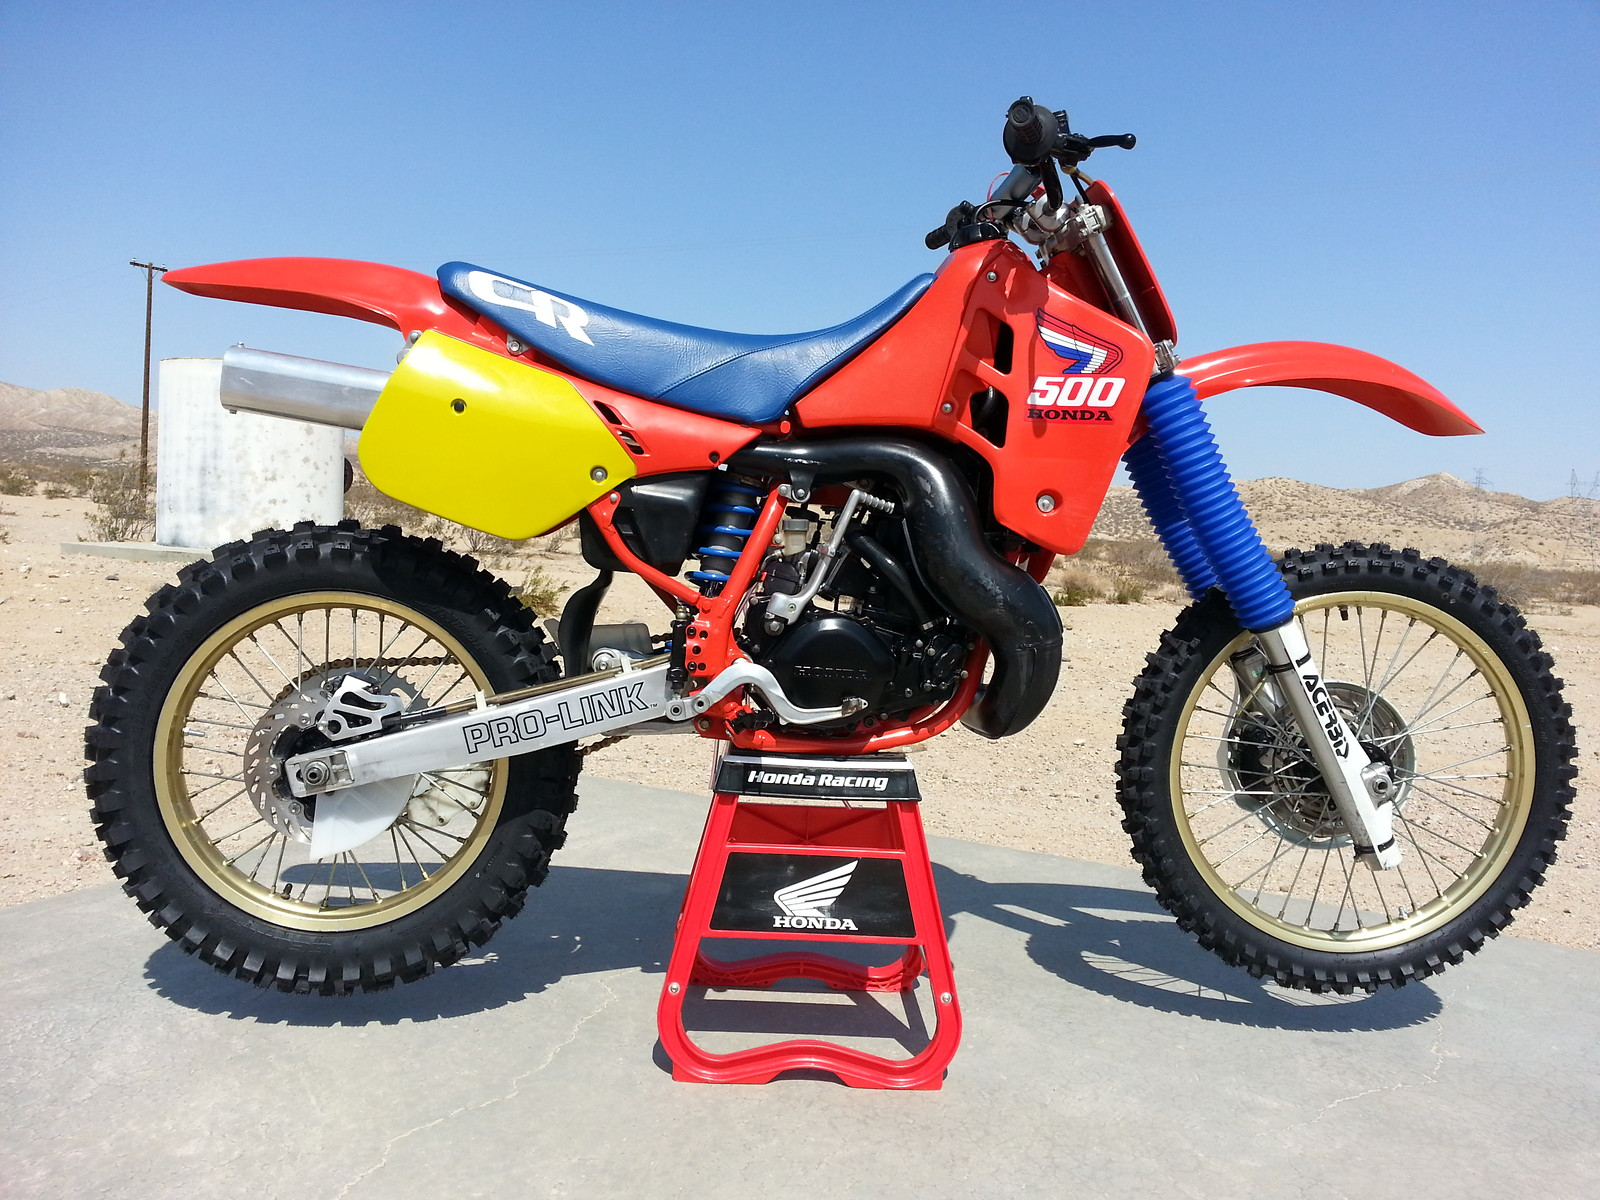 1987 Honda CR500 - yz450fpilot's Bike Check